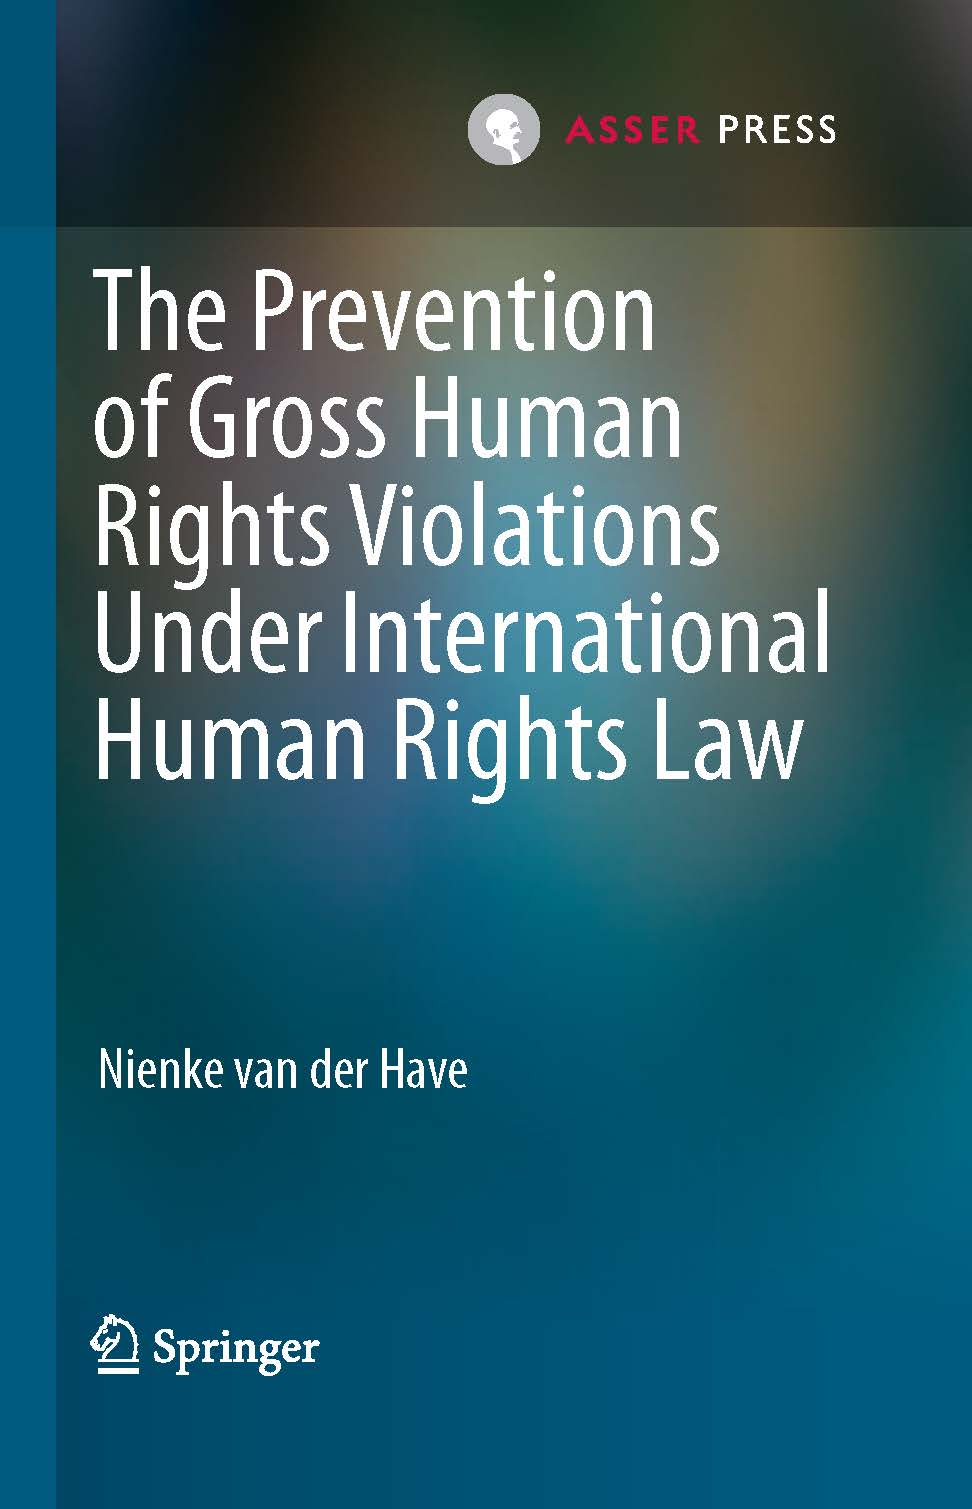 The Prevention of Gross Human Rights Violations Under International Human Rights Law